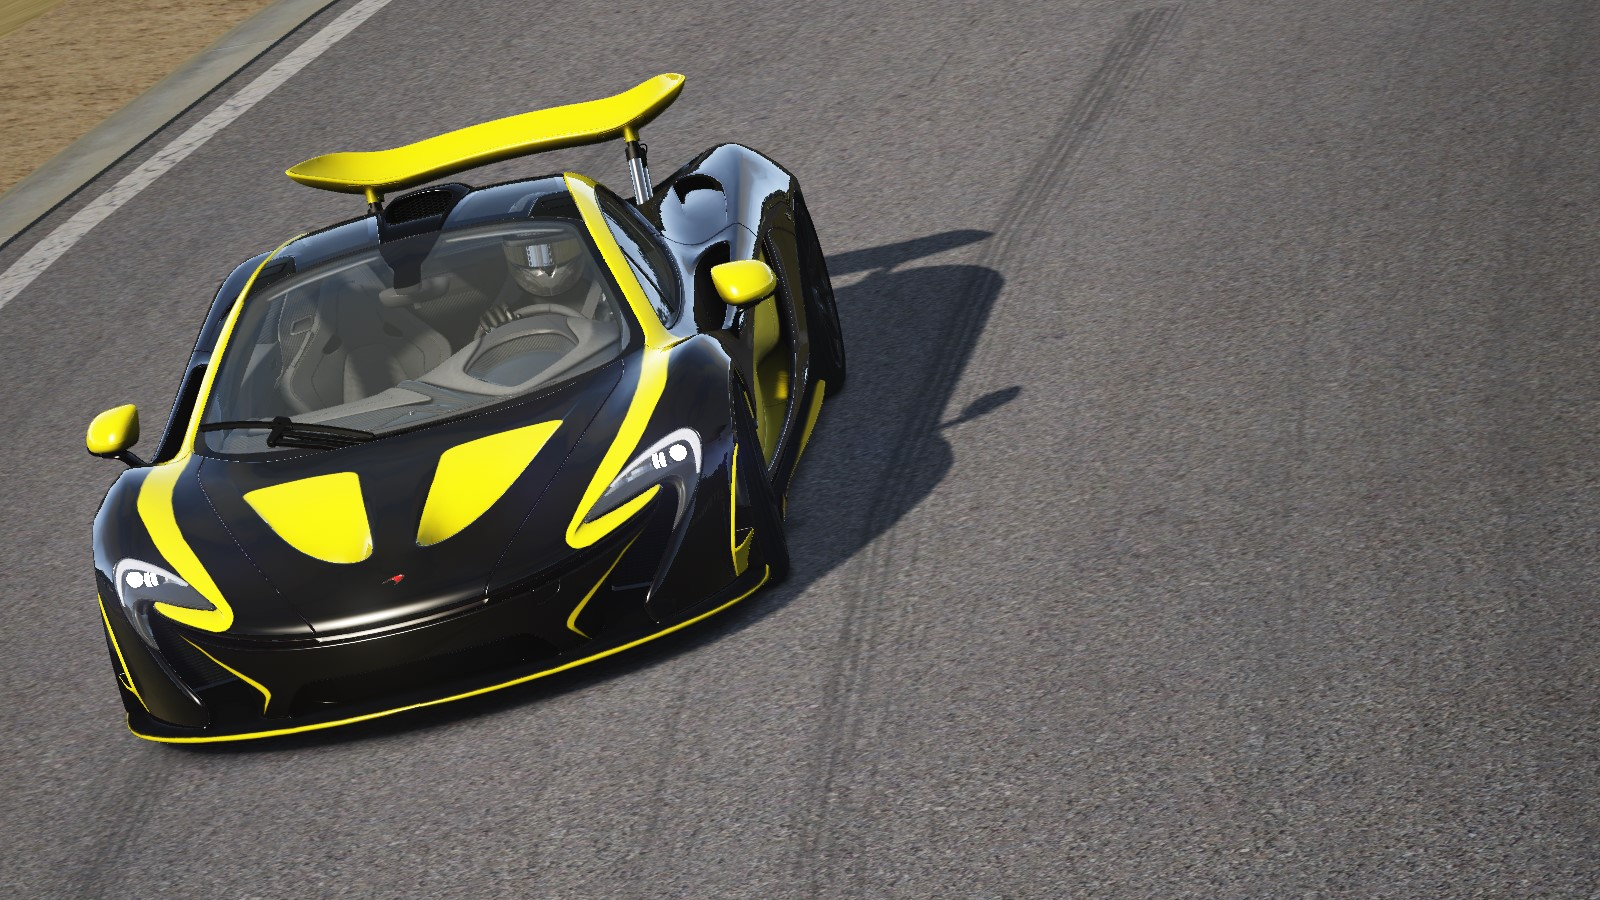 Screenshot_ks_mclaren_p1_barbagallo_9-9-115-2-30-21.jpg